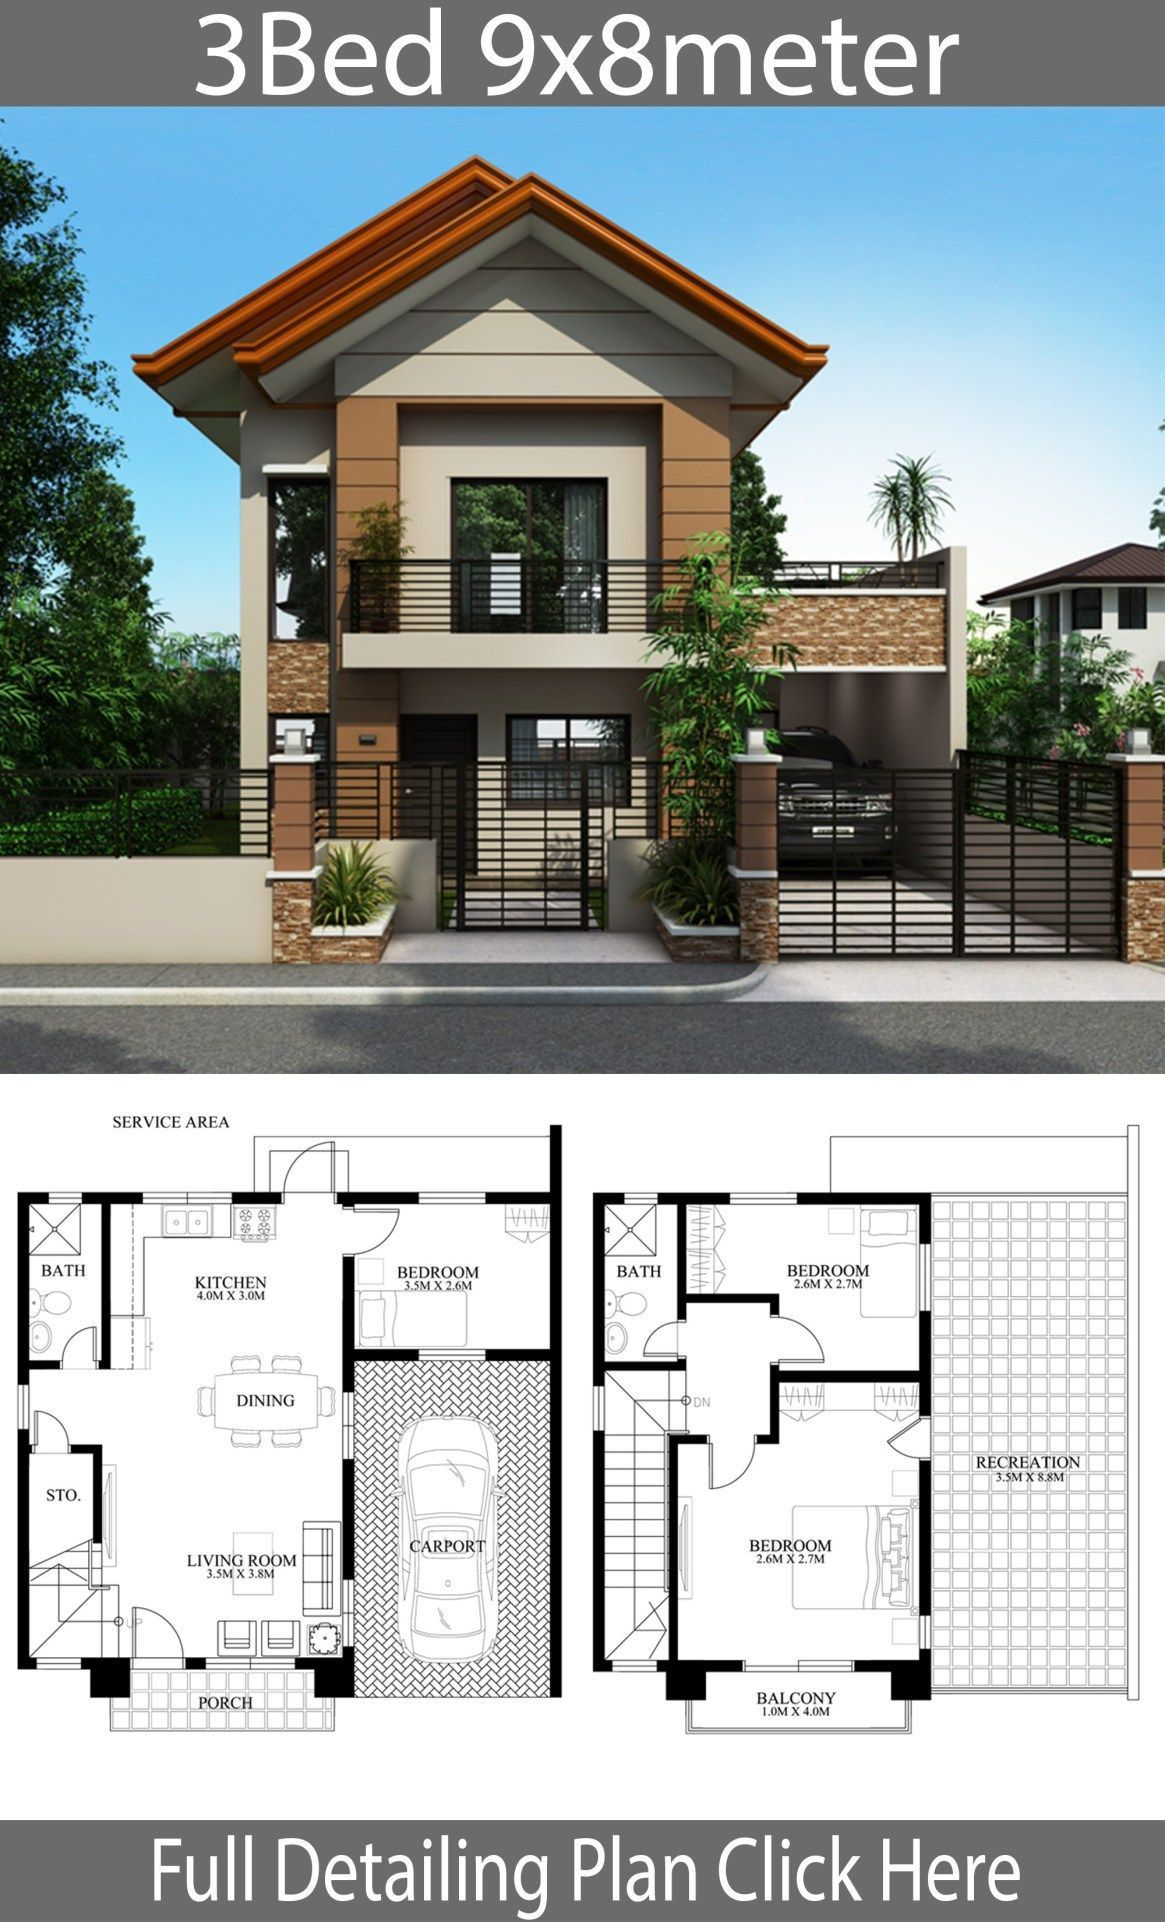 Unique Small Two Story House Plans 3 Bedroom Home Design Plan 9x8m With 3 Bedrooms Philippines House Design 2 Storey House Design Modern House Floor Plans